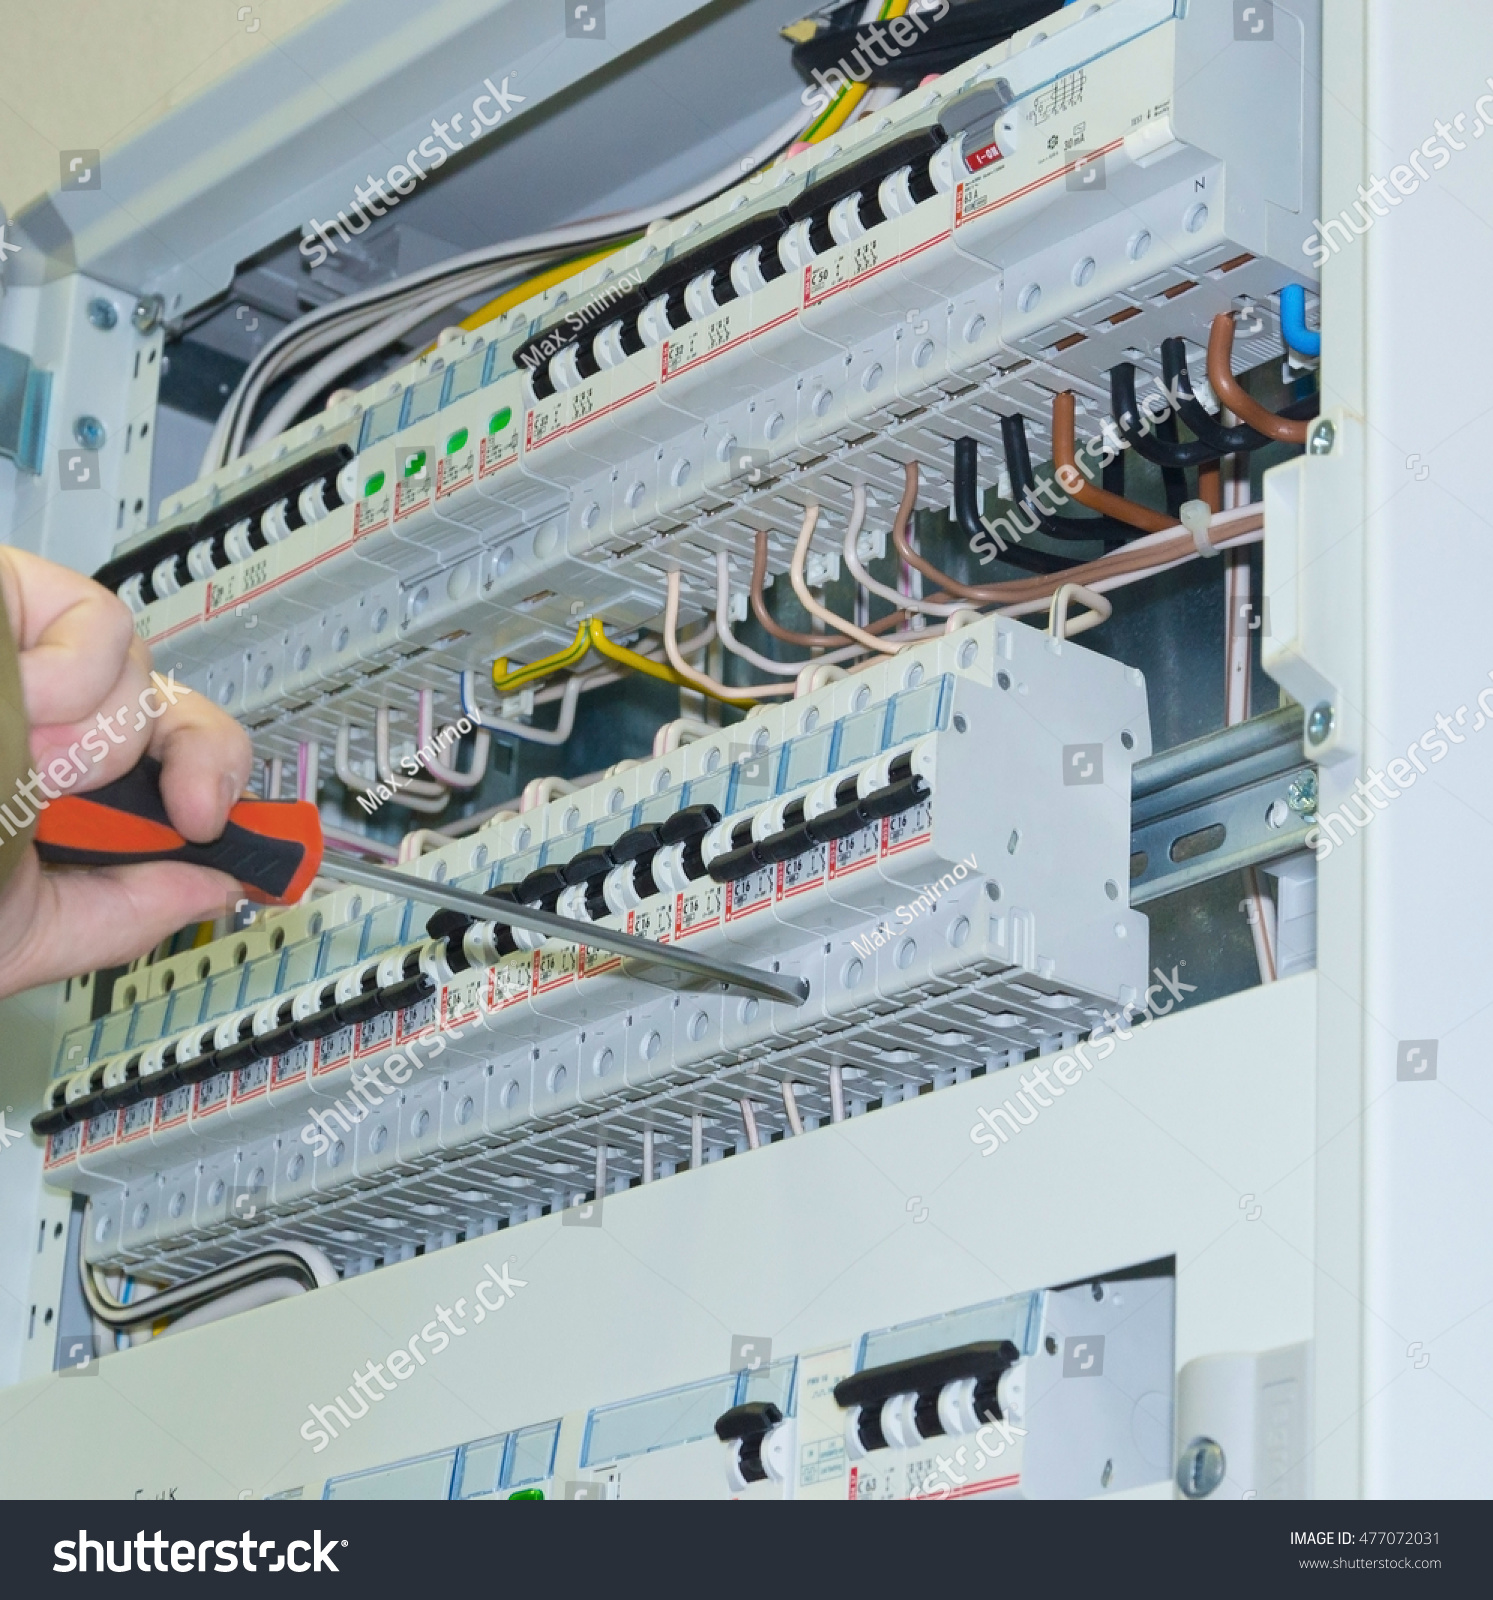 hight resolution of electricity distribution box with wires and circuit breakers fuse box